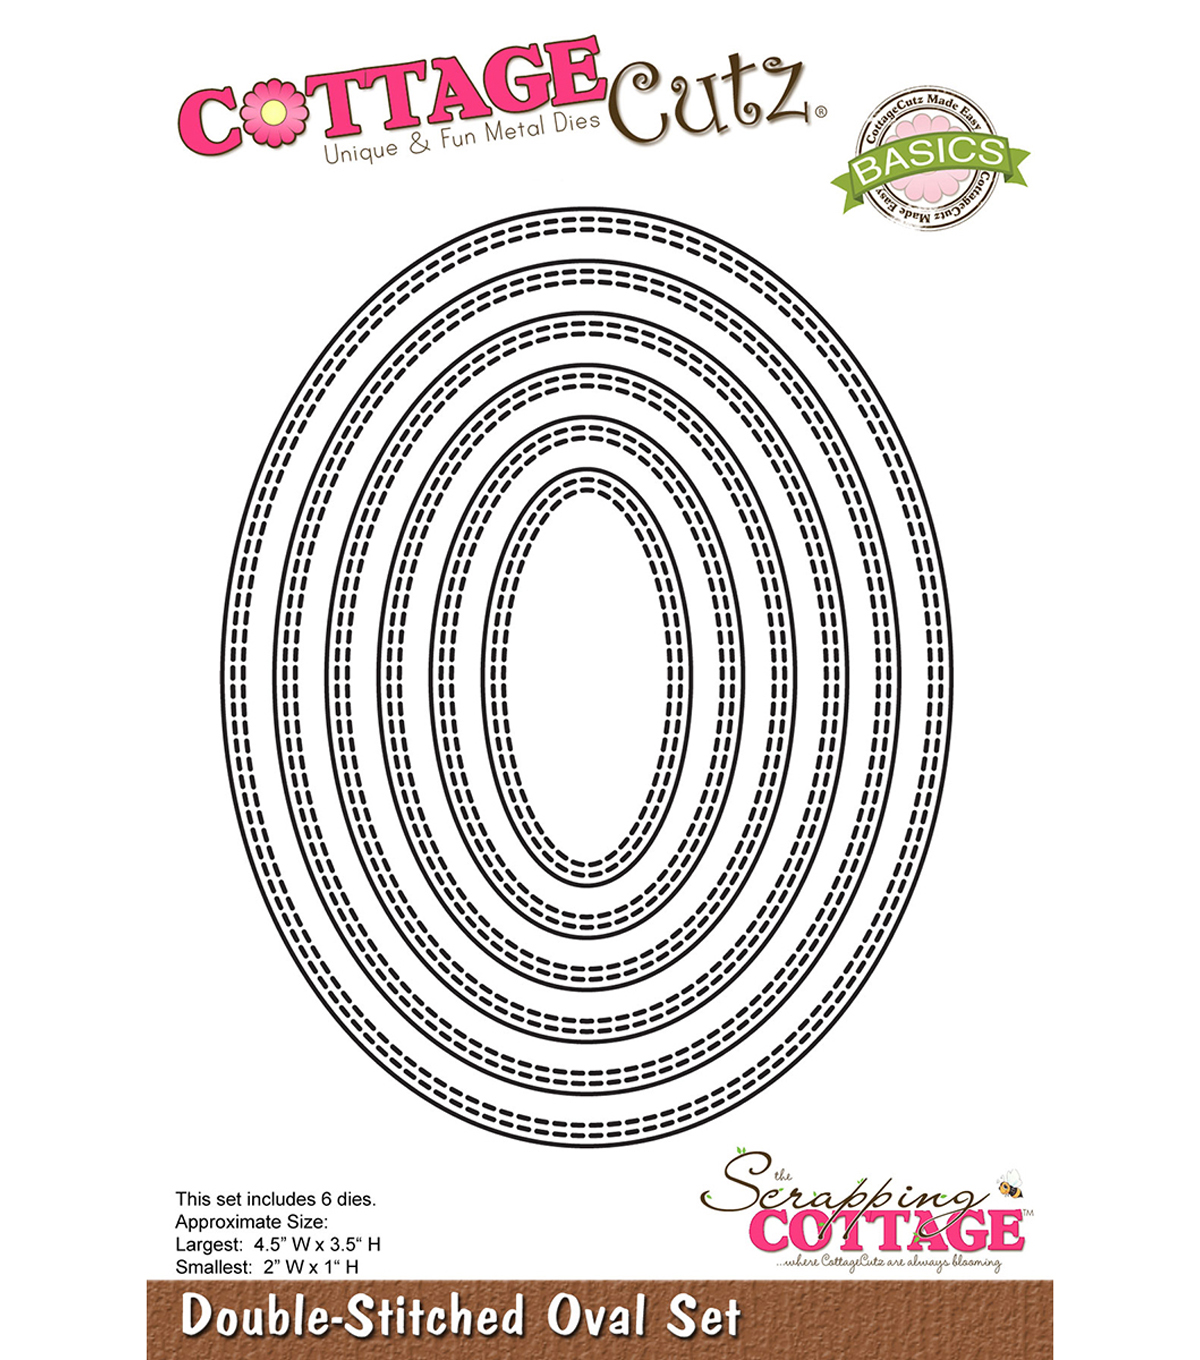 CottageCutz Basics Dies-Double Stitched Oval, 2\u0022X1\u0022 To 4.5\u0022X3.5\u0022